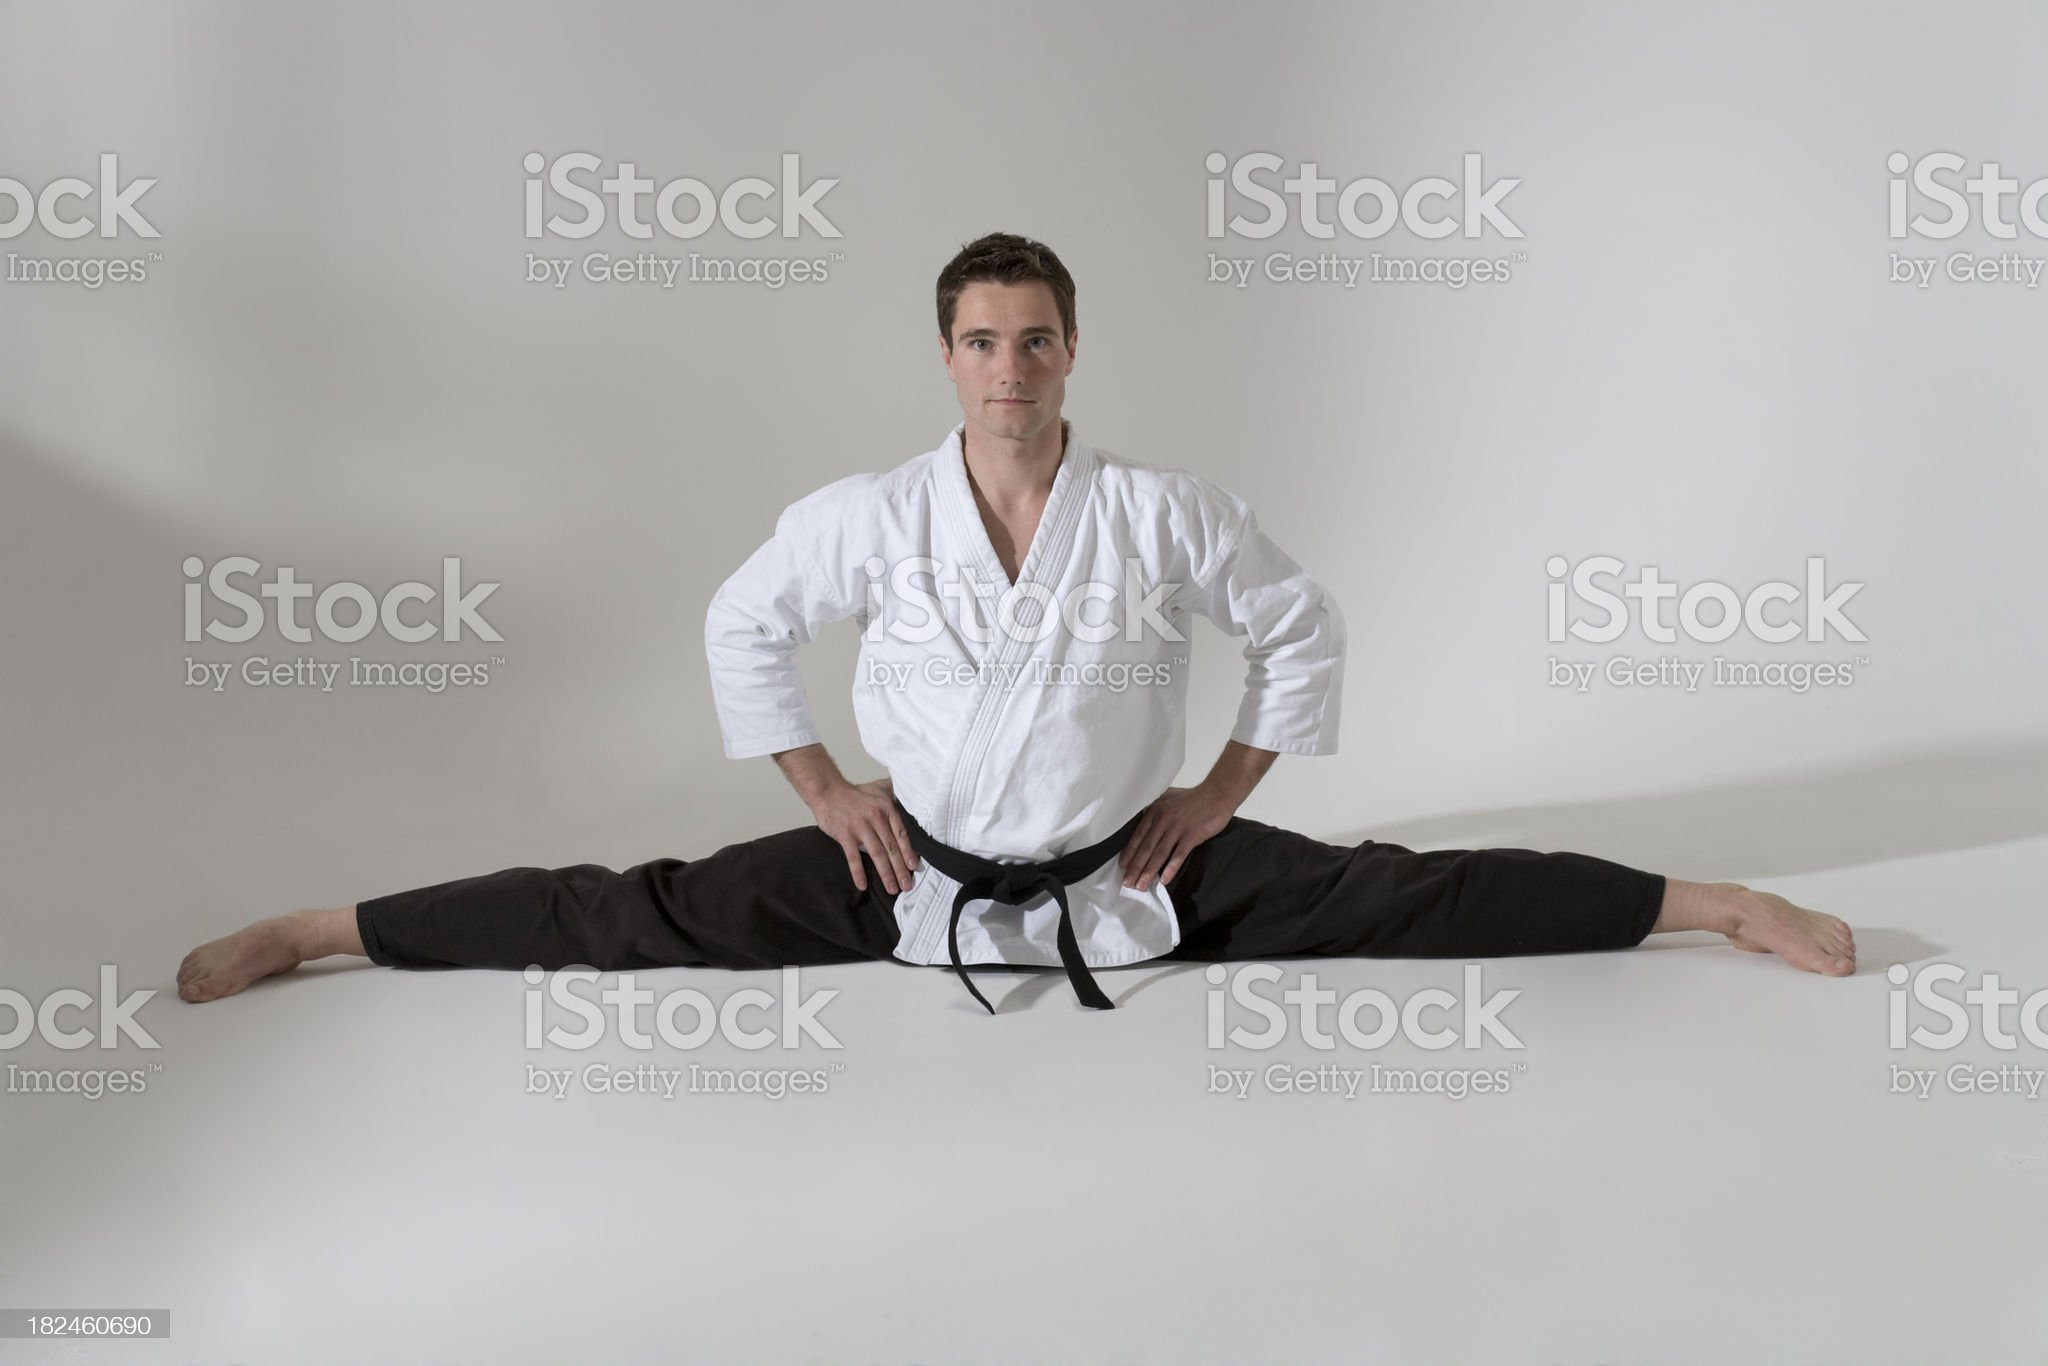 Martial arts artist doing the splits royalty-free stock photo